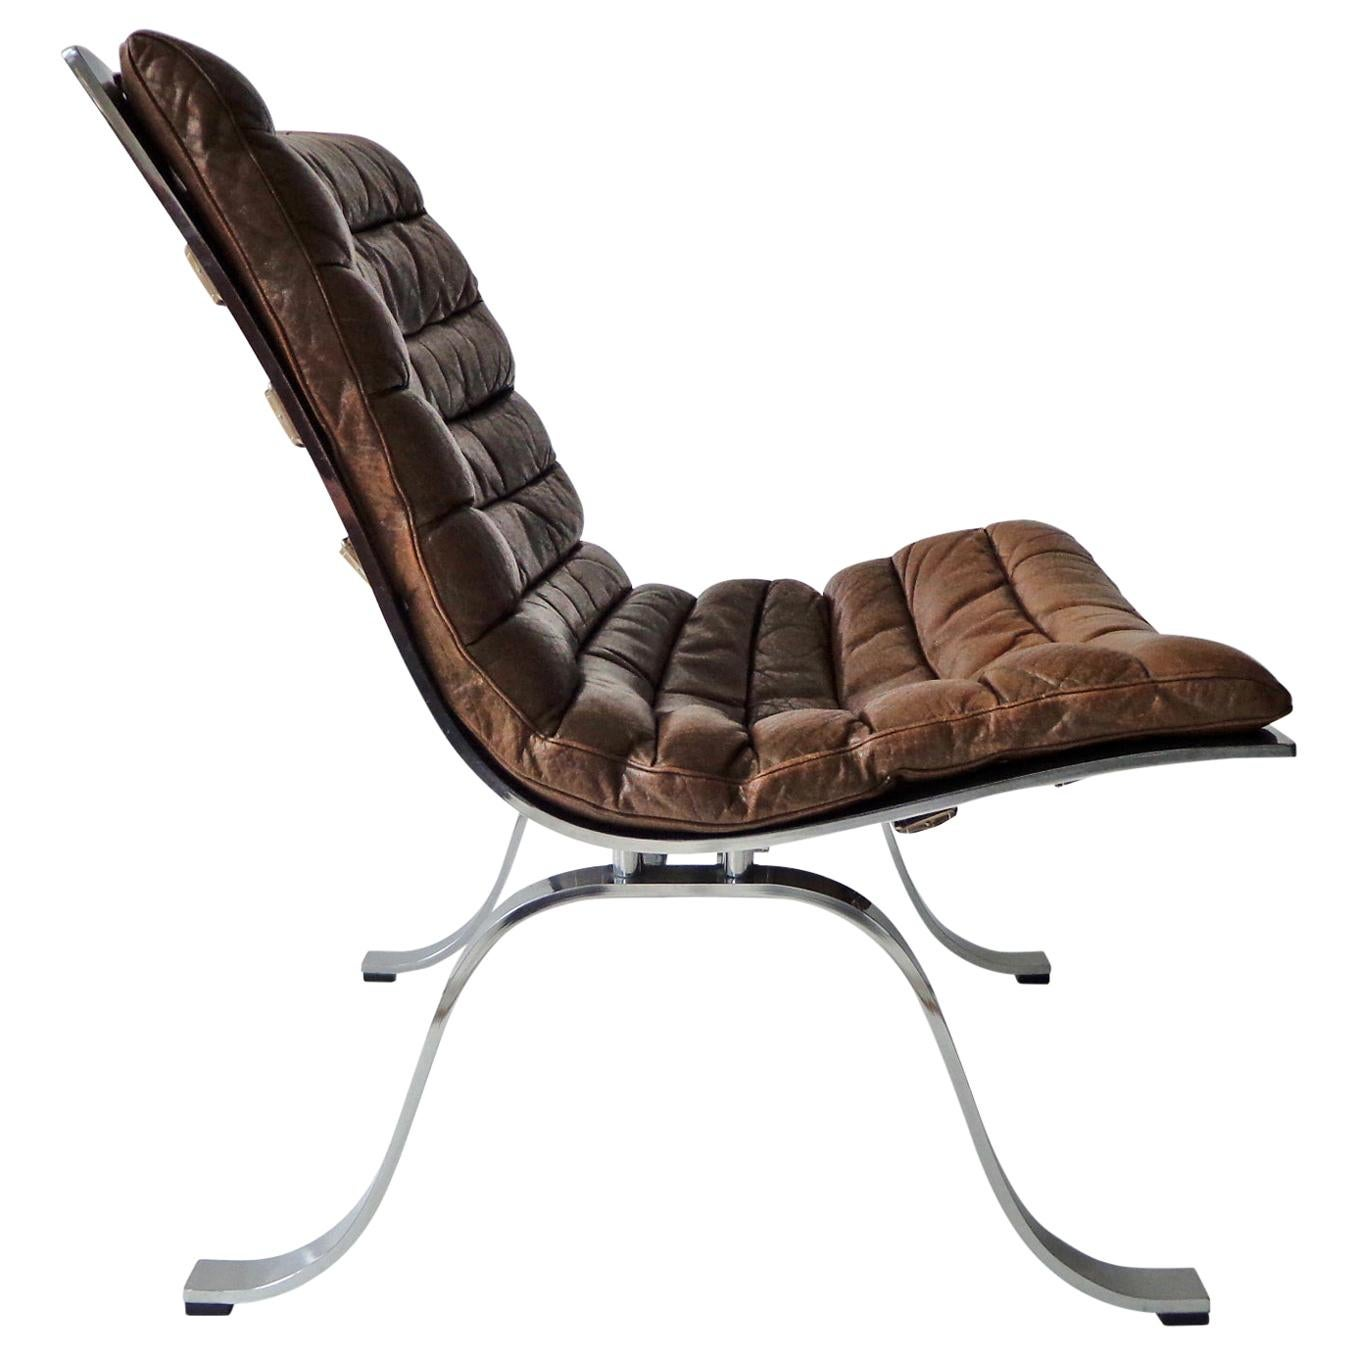 Arne Norell 'Ariet' Lounge Chair in Original Cognac/Brown Leather